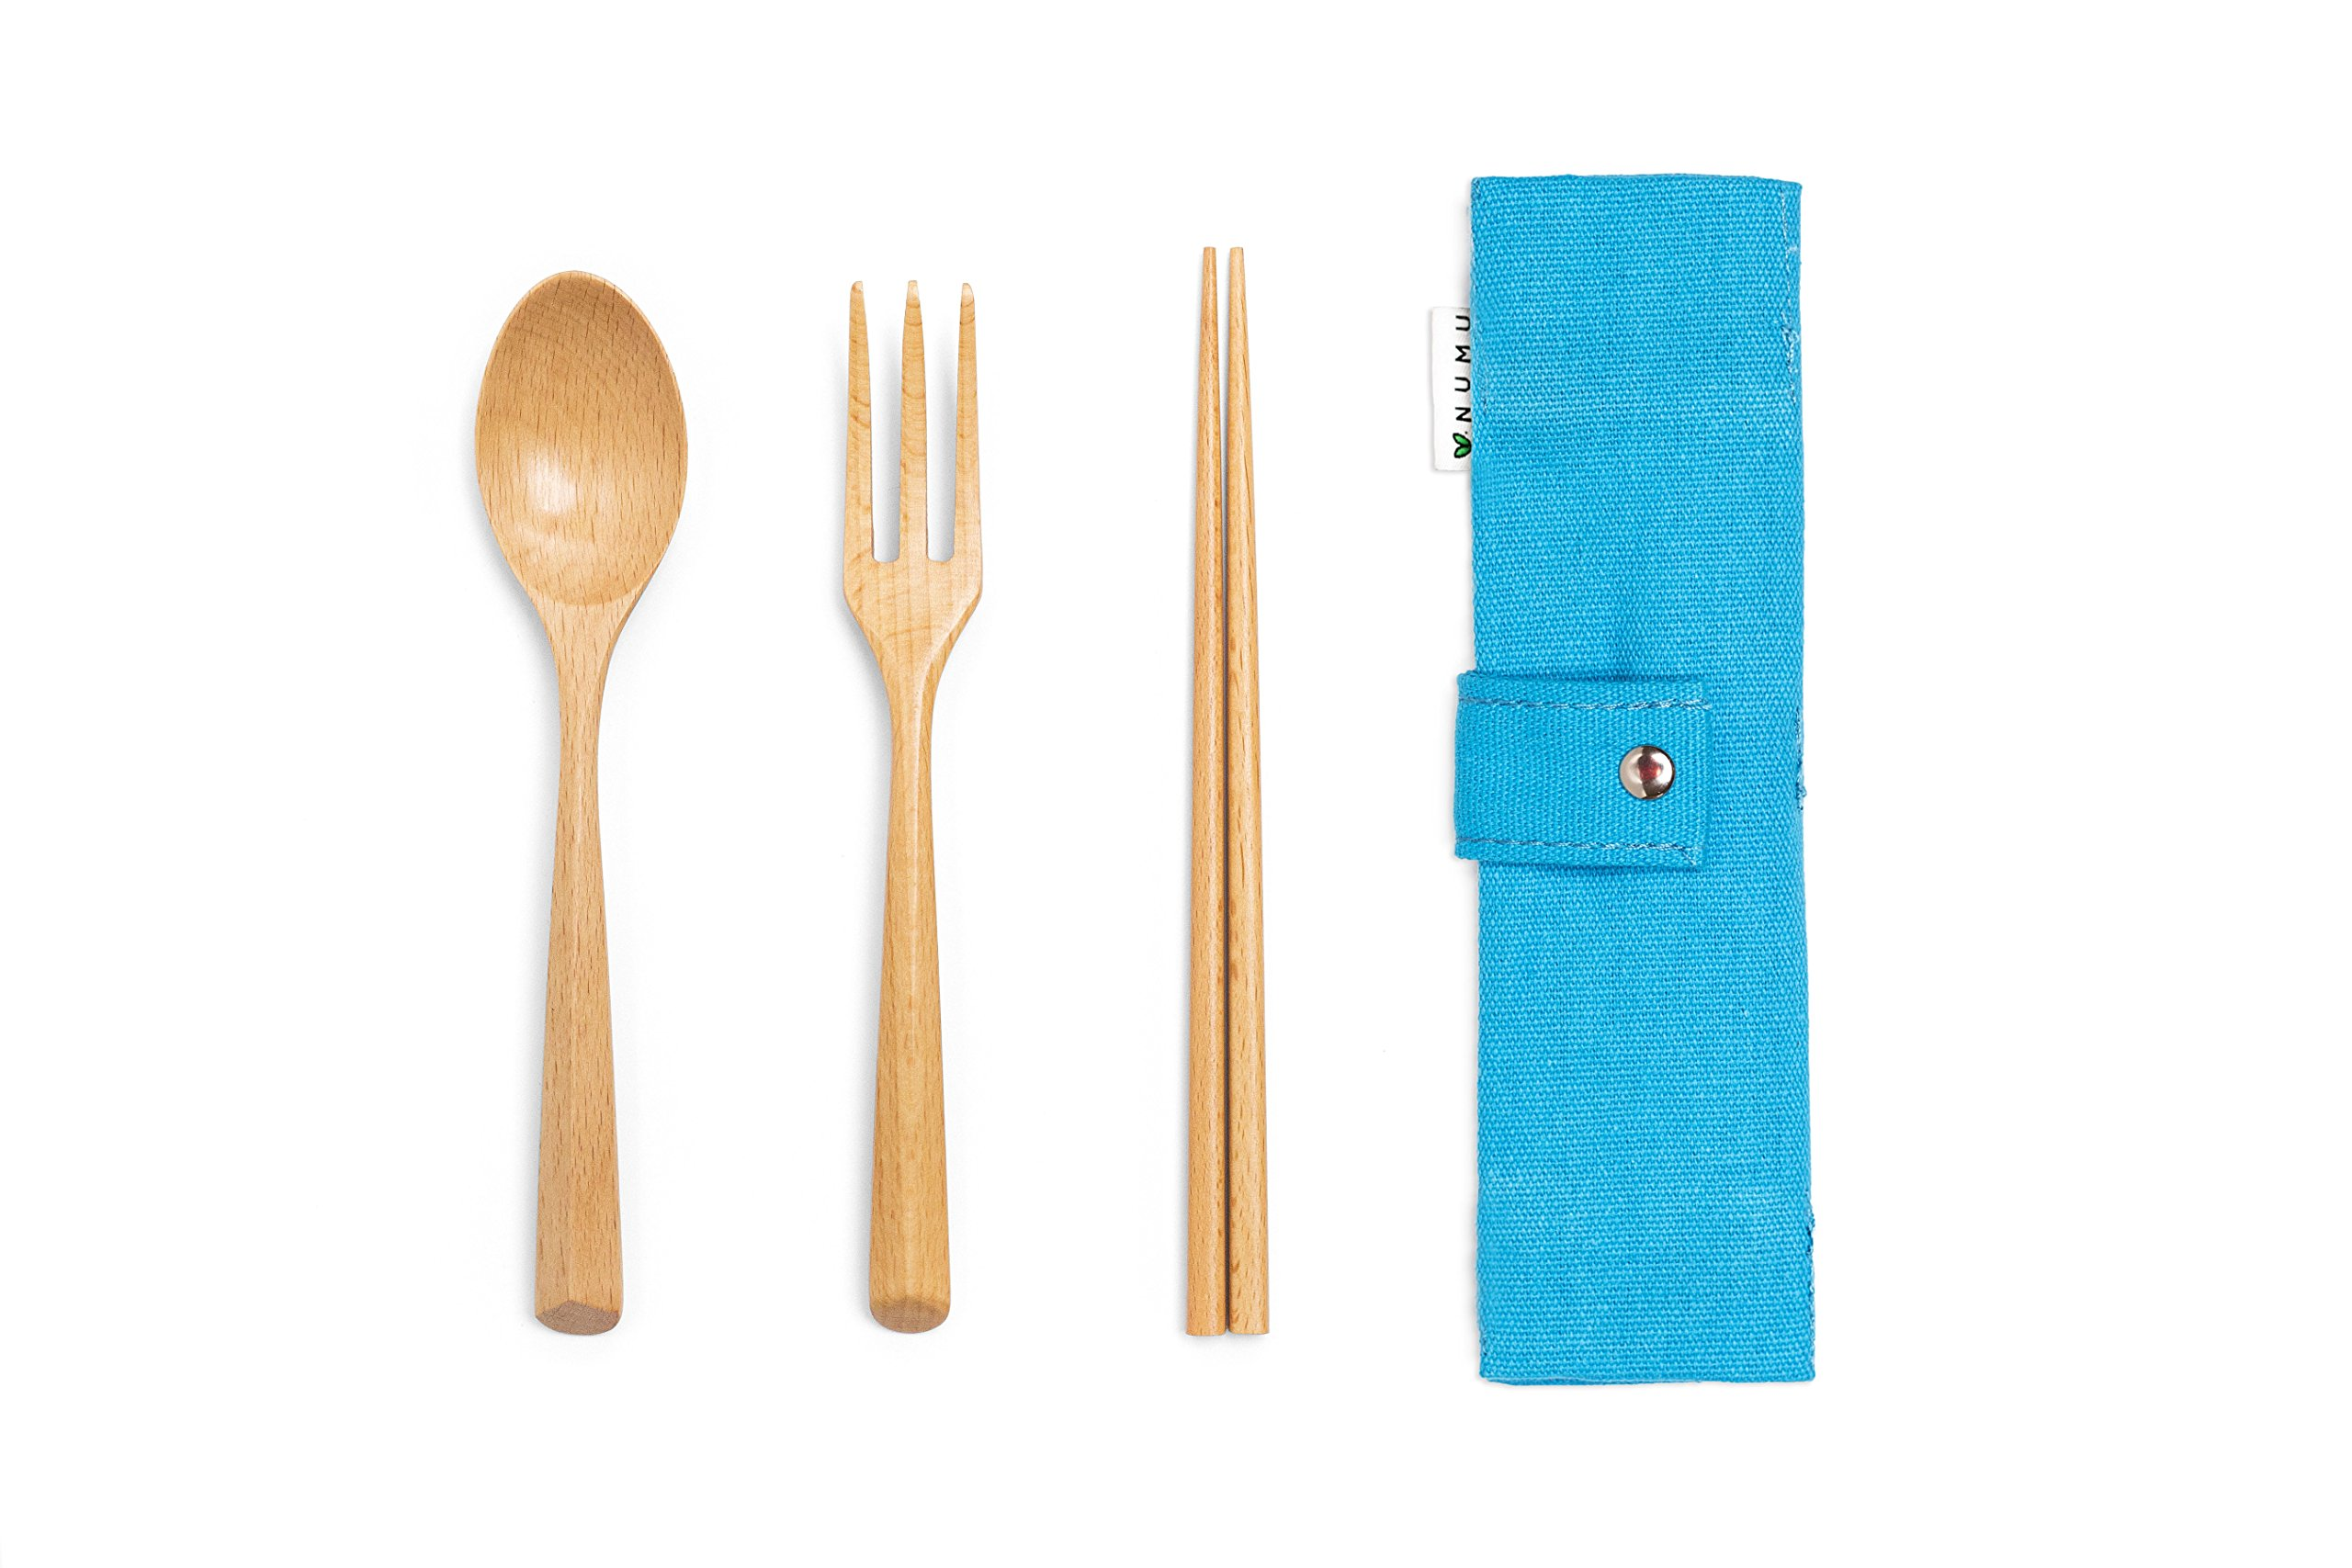 NUMU Wooden Cutlery Set | Travel Utensils Set | Eco Friendly Reusable Flatware | Fork, Spoon, Chopsticks w Portable Pouch (Blue) | Lightweight Stronger than Bamboo Utensils for Camping Office Lunch